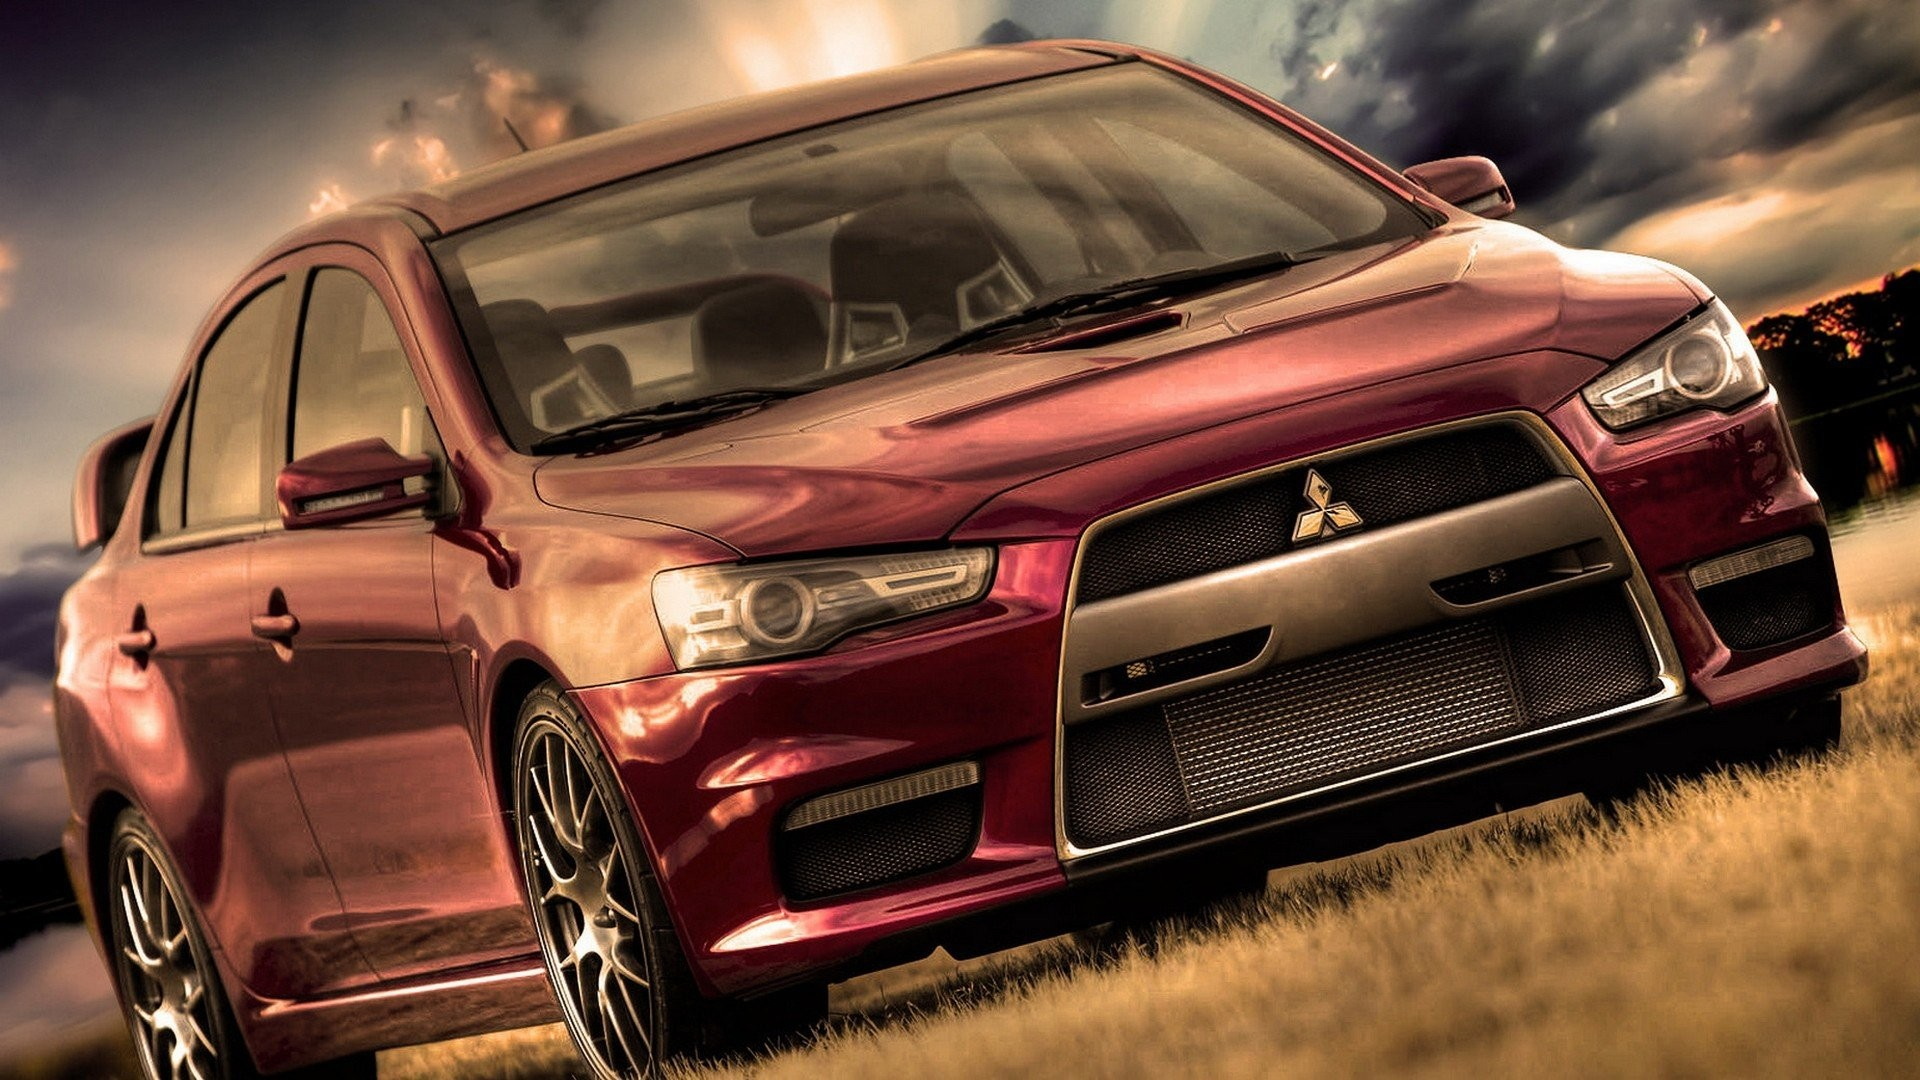 Mitsubishi Lancer Evolution X Jdm Style Beautiful Automobile Desktop  Vehicles Wallpapers Mitsubishi Lancer Evolution White